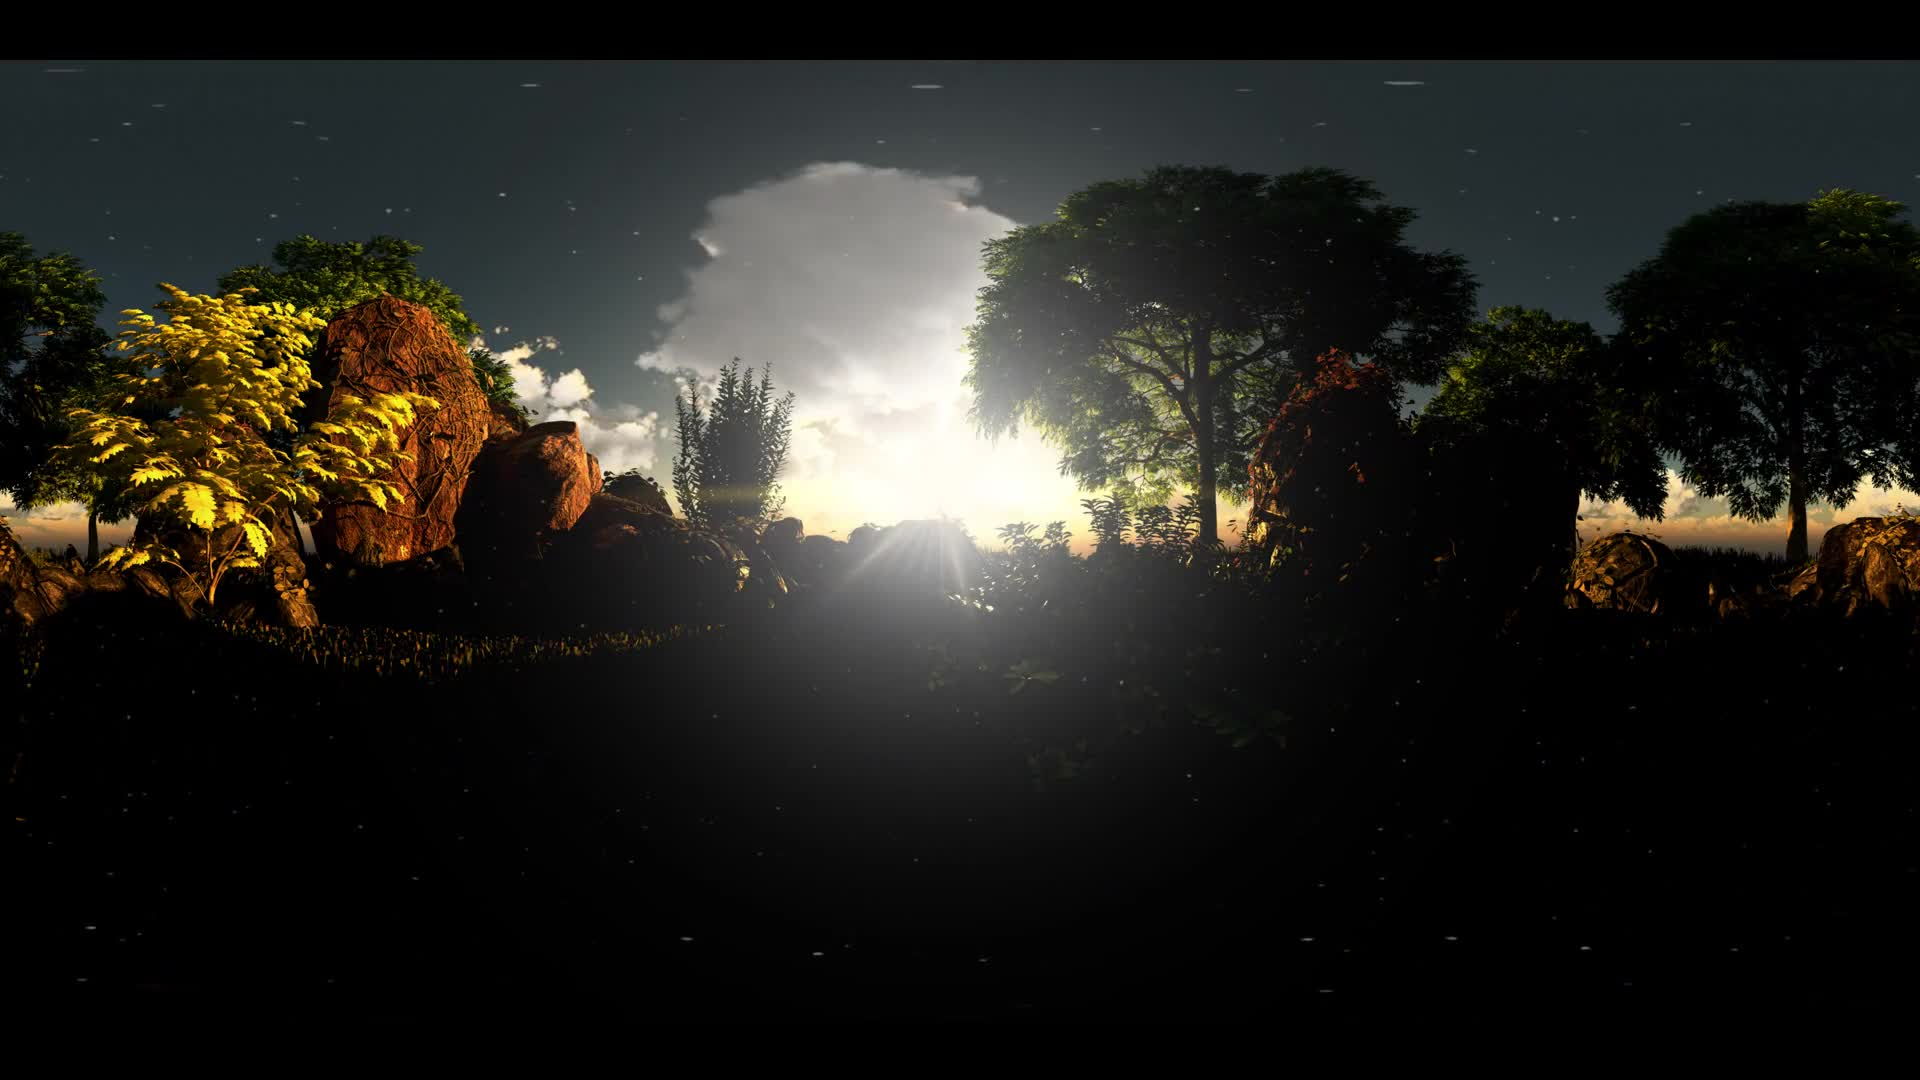 vr 360. timelapse of cloud sunset and oak trees at rocky field in virtual reality 360 degree video